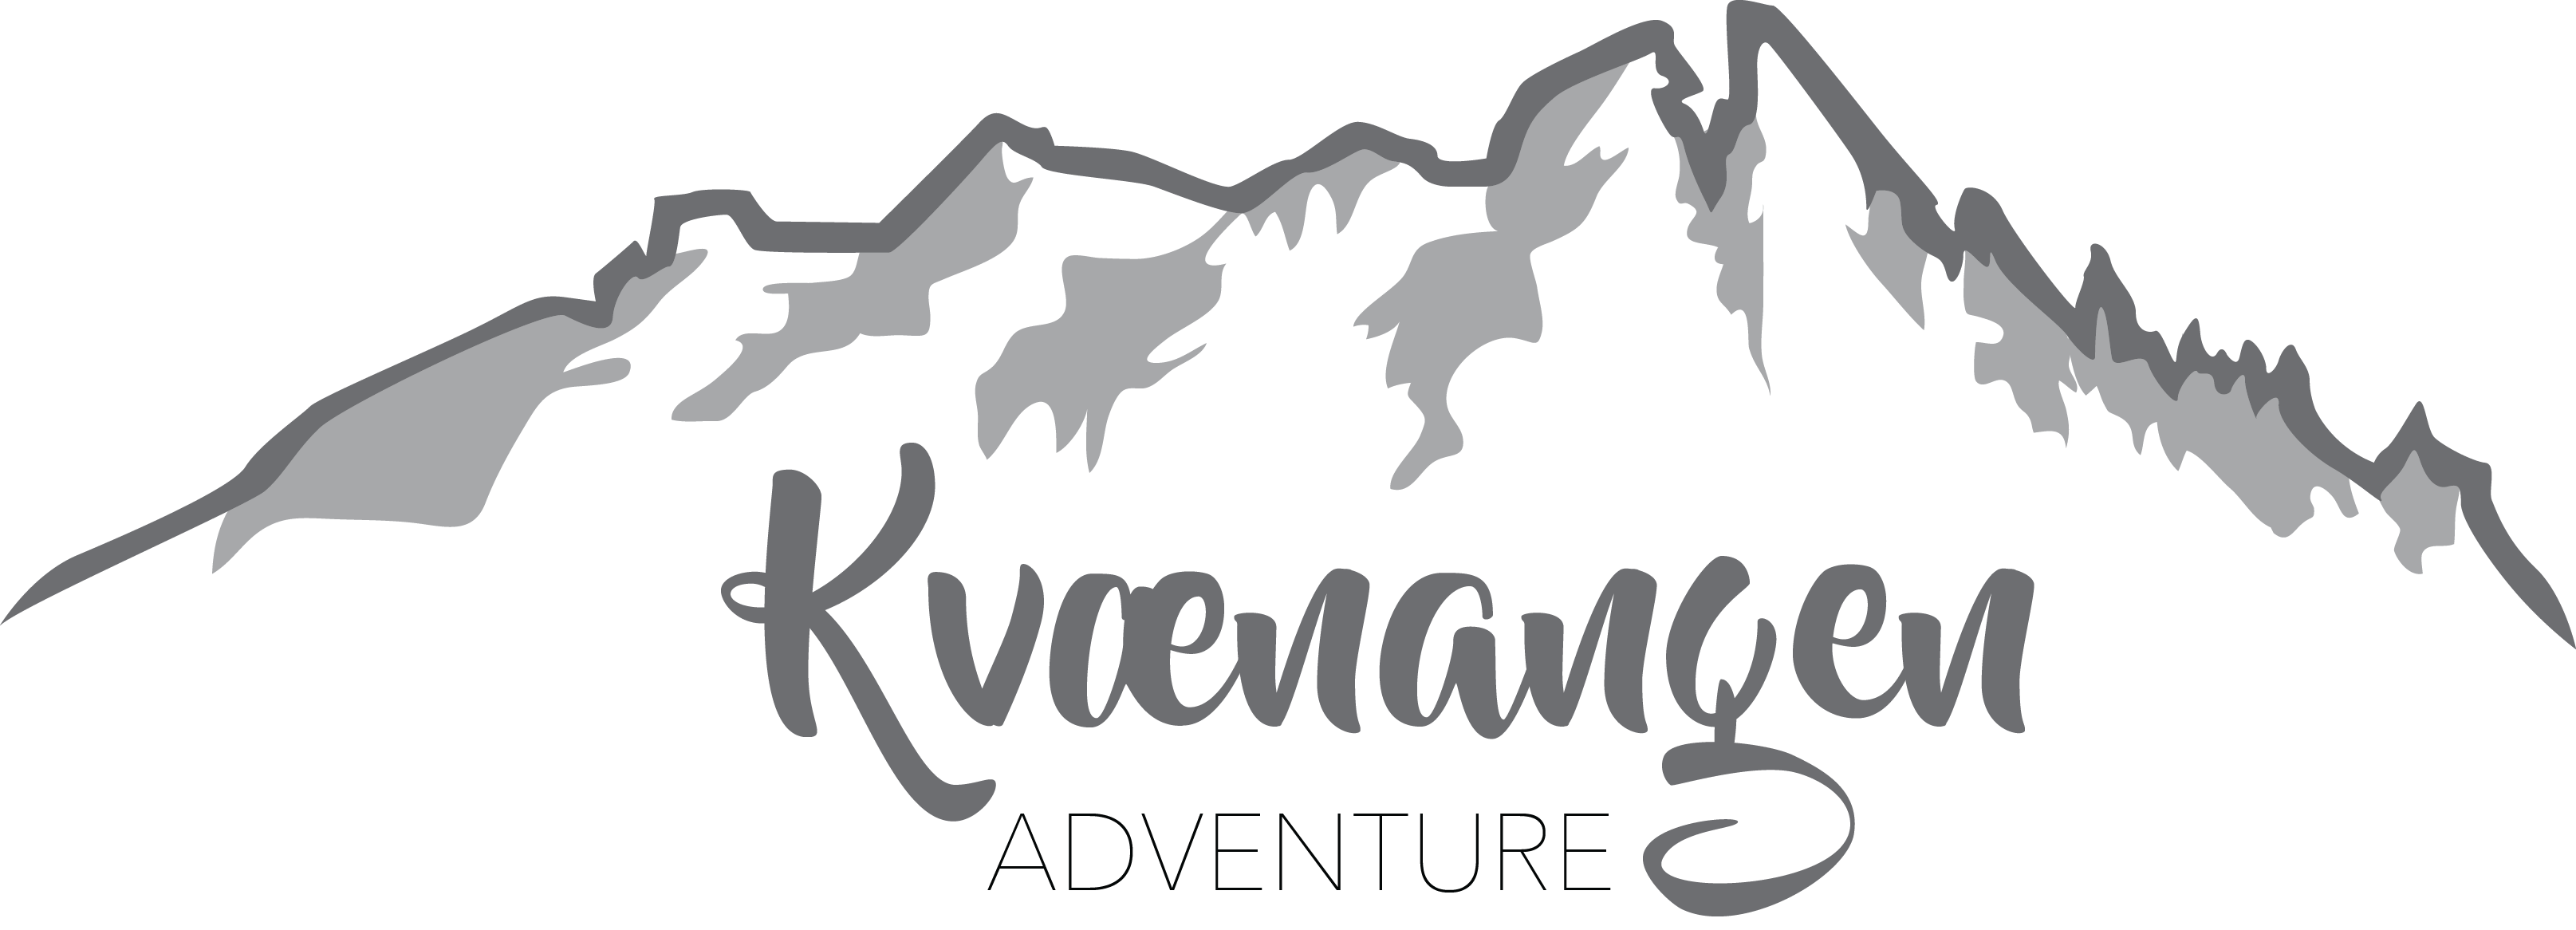 Kvænangen Adventure